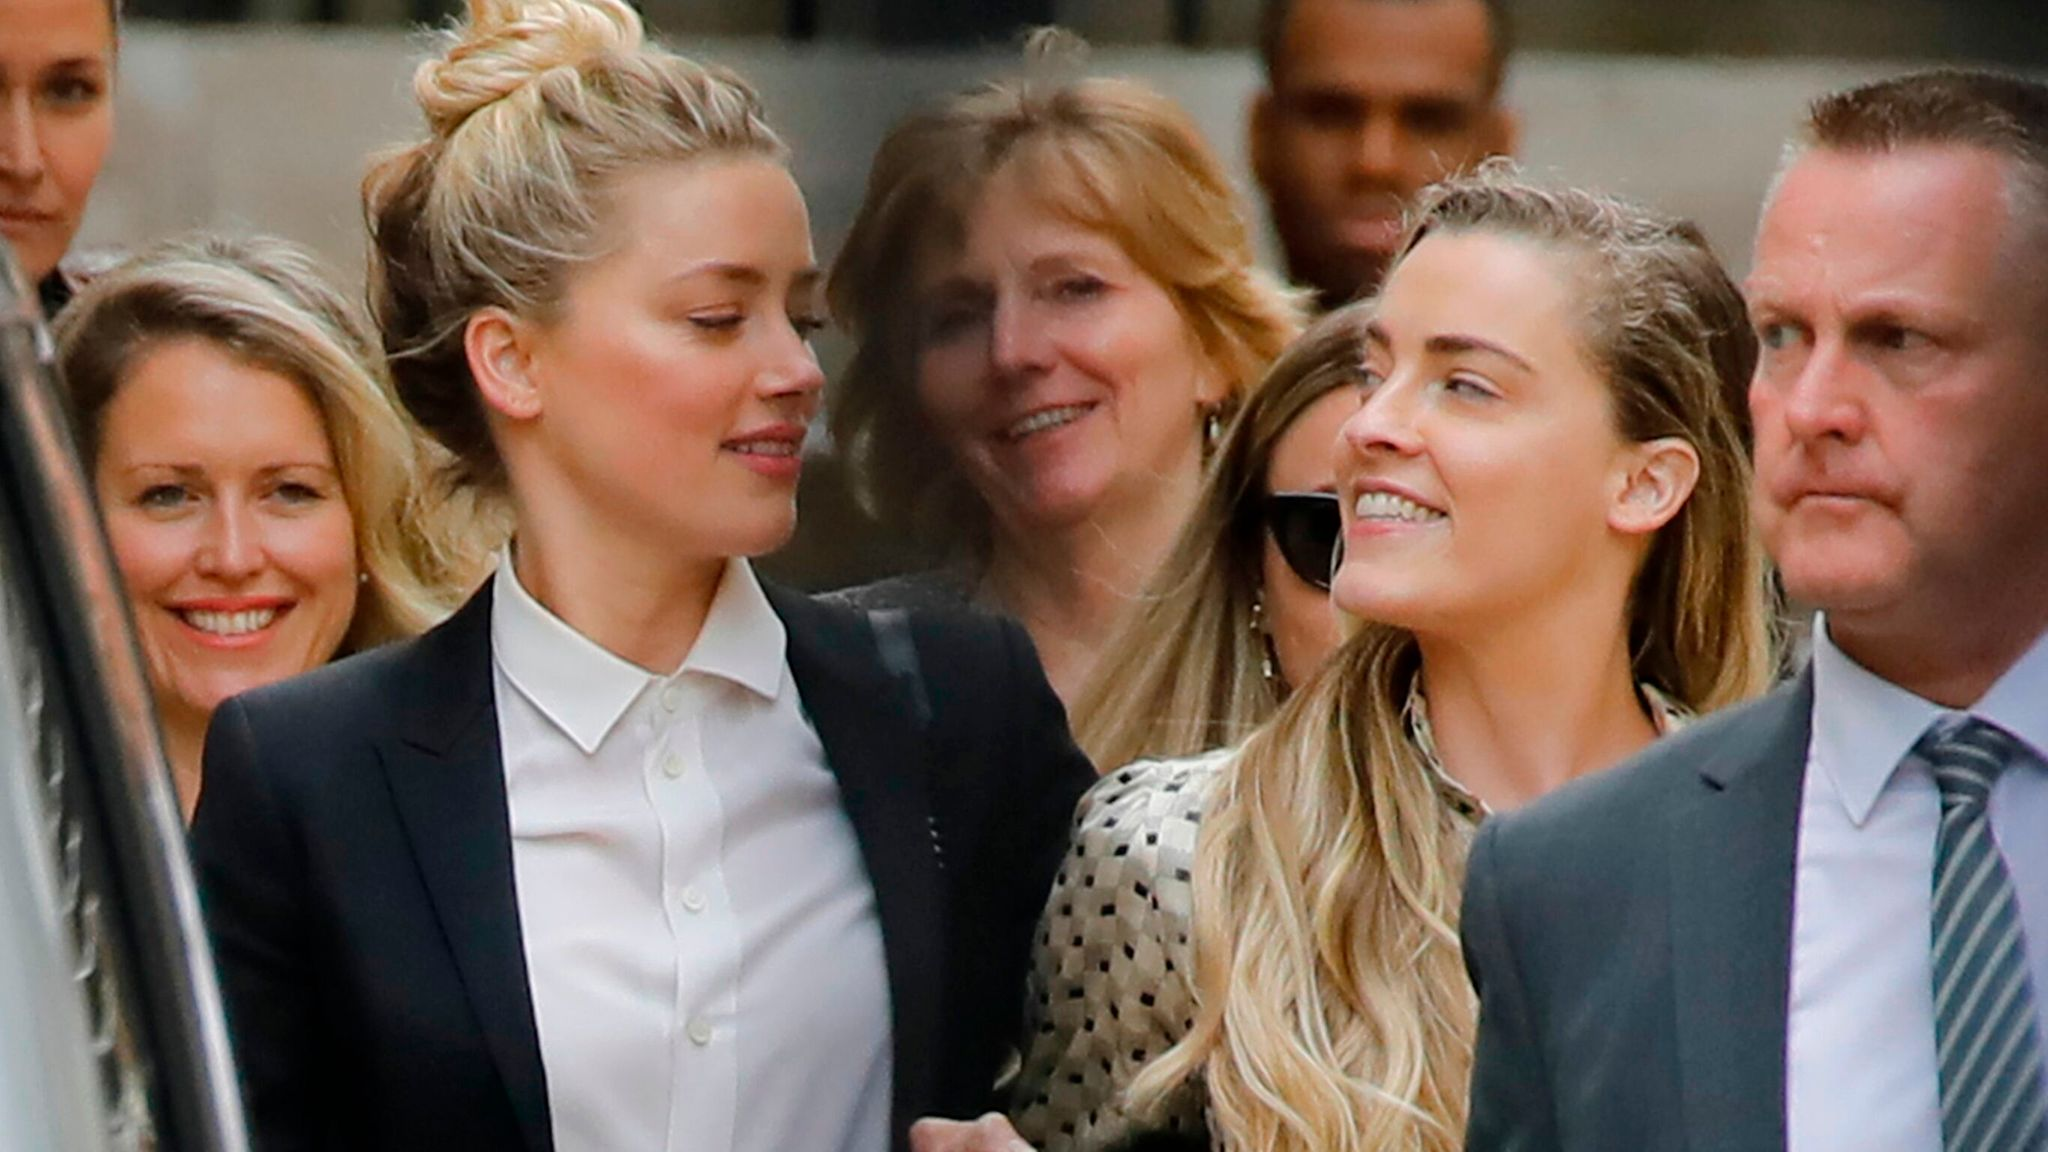 """US actress Amber Heard (L) leaves hand-in-hand with her sister Whitney Heard (R) from the High Court after a hearing in the libel trial by her former husband US actor Johnny Depp against News Group Newspapers (NGN) in London, on July 24, 2020. - Depp is suing the publishers of The Sun and the author of the article for the claims that called him a """"wife-beater"""" in April 2018. (Photo by Tolga AKMEN / AFP) (Photo by TOLGA AKMEN/AFP via Getty Images)"""